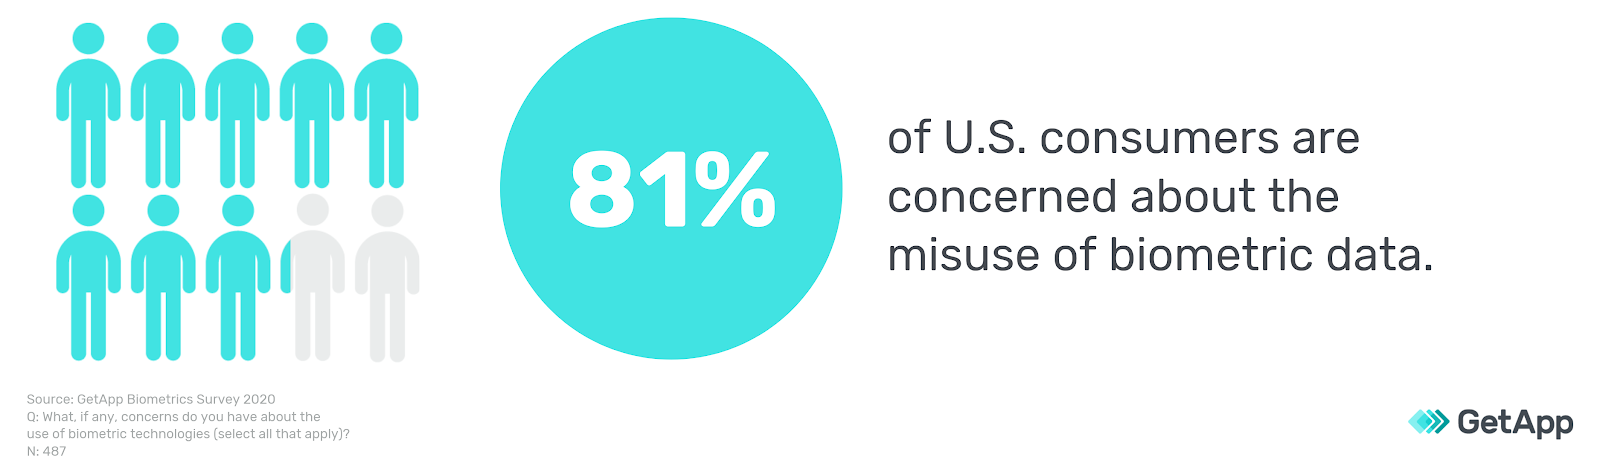 81 percent of US consumers are concerned with misuse of biometric data